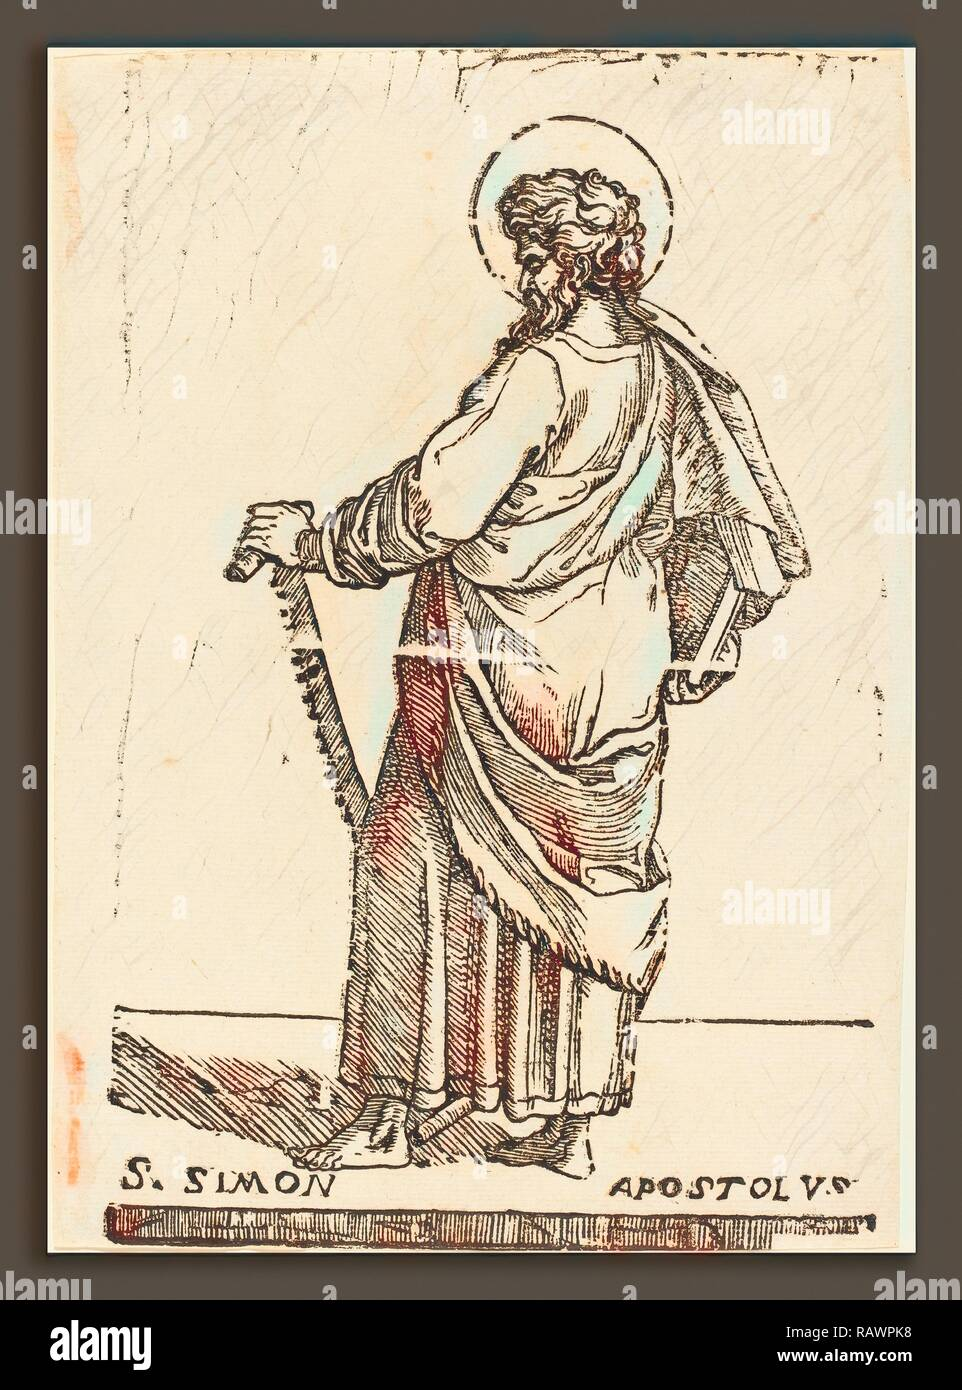 Jacques Stella (French, 1596 - 1657), Saint Simon, woodcut. Reimagined by Gibon. Classic art with a modern twist reimagined - Stock Image